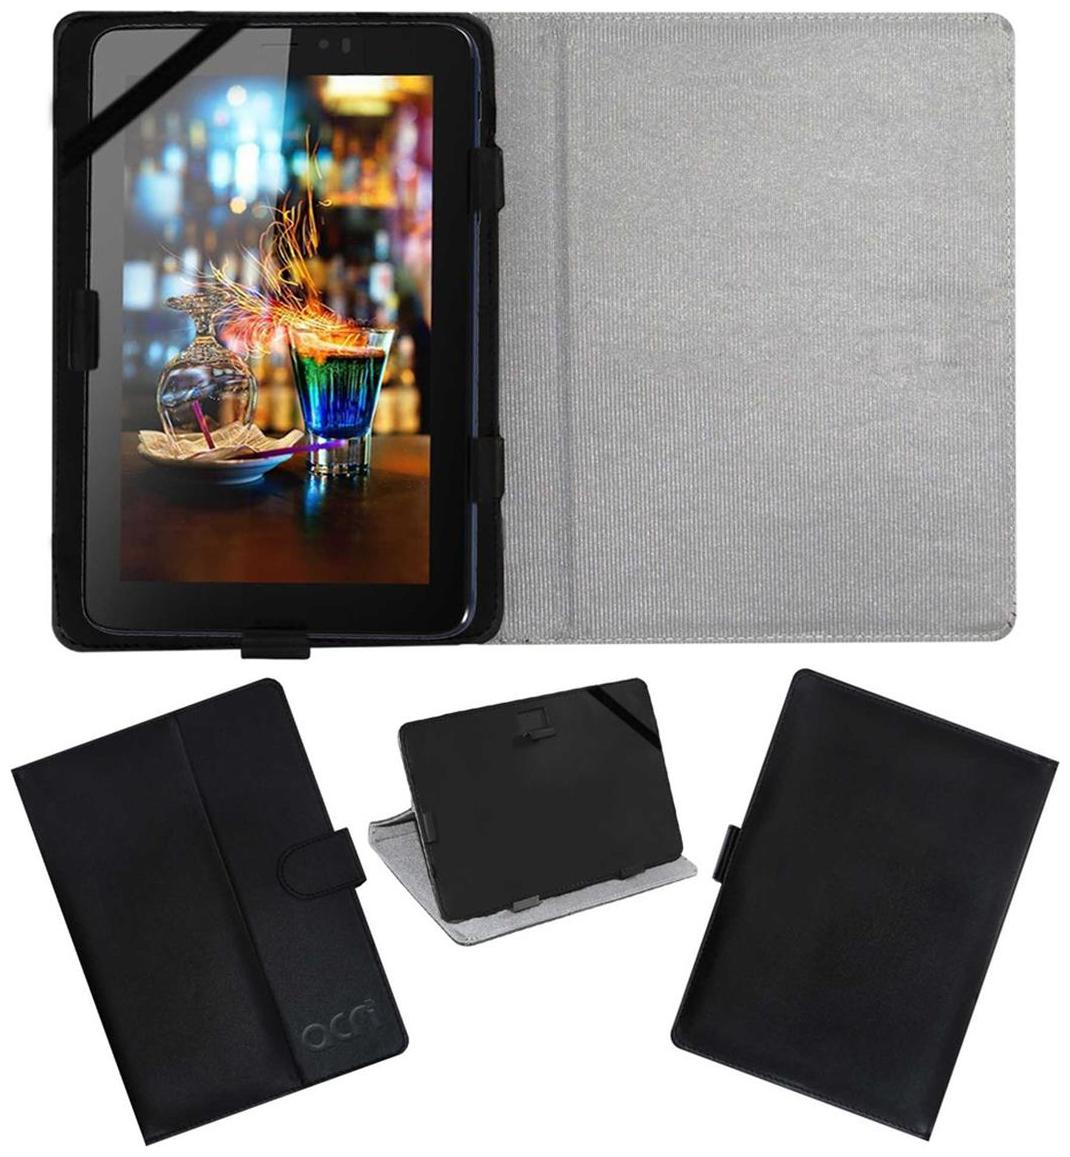 Acm Leather Flip Flap Case For Micromax Canvas Tab P701 Tablet Cover Black